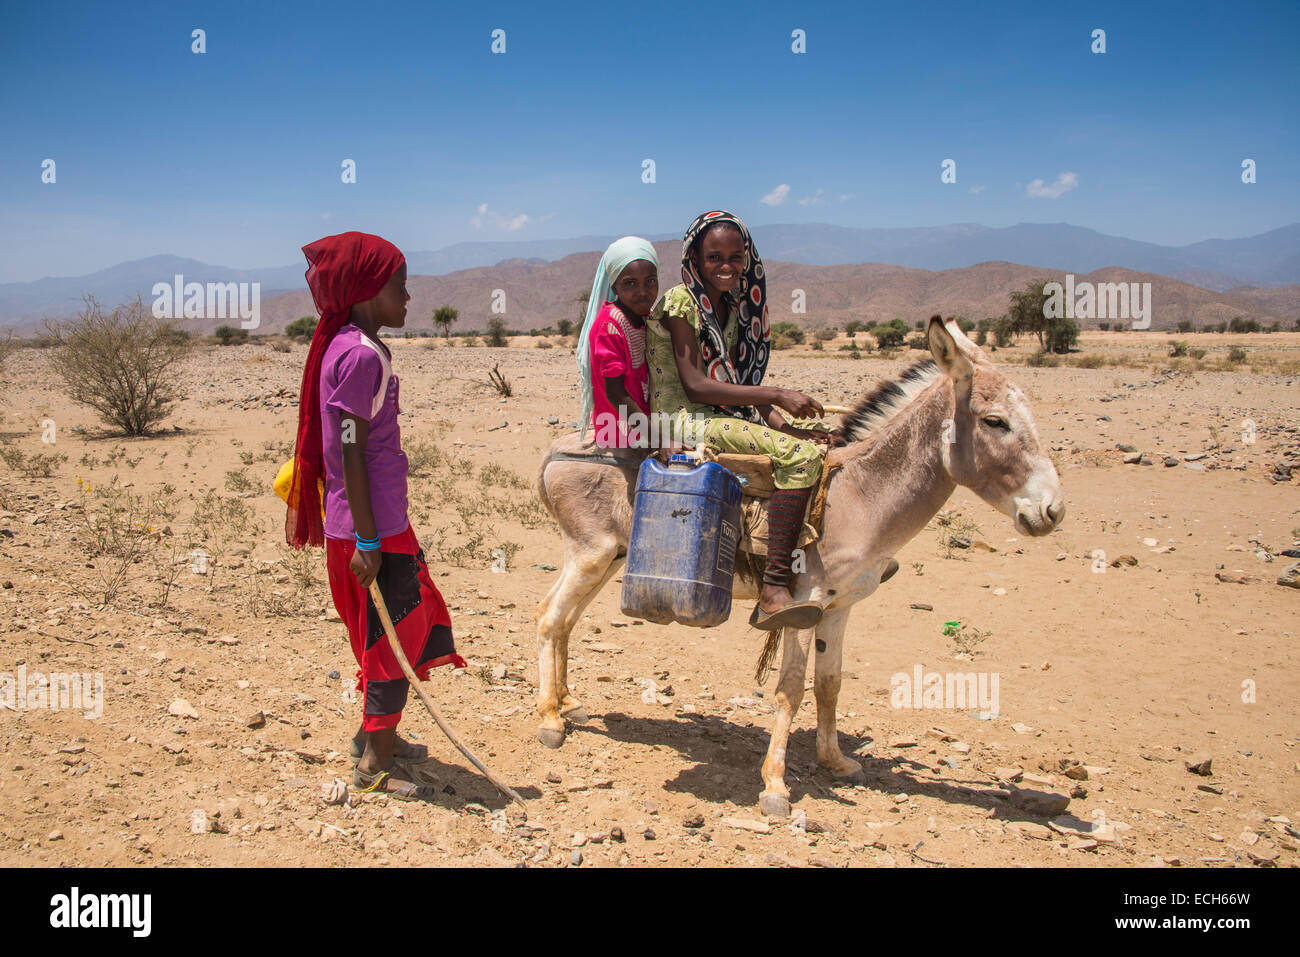 Children with a donkey on the way to a waterhole, in the lowlands, Eritrea Stock Photo